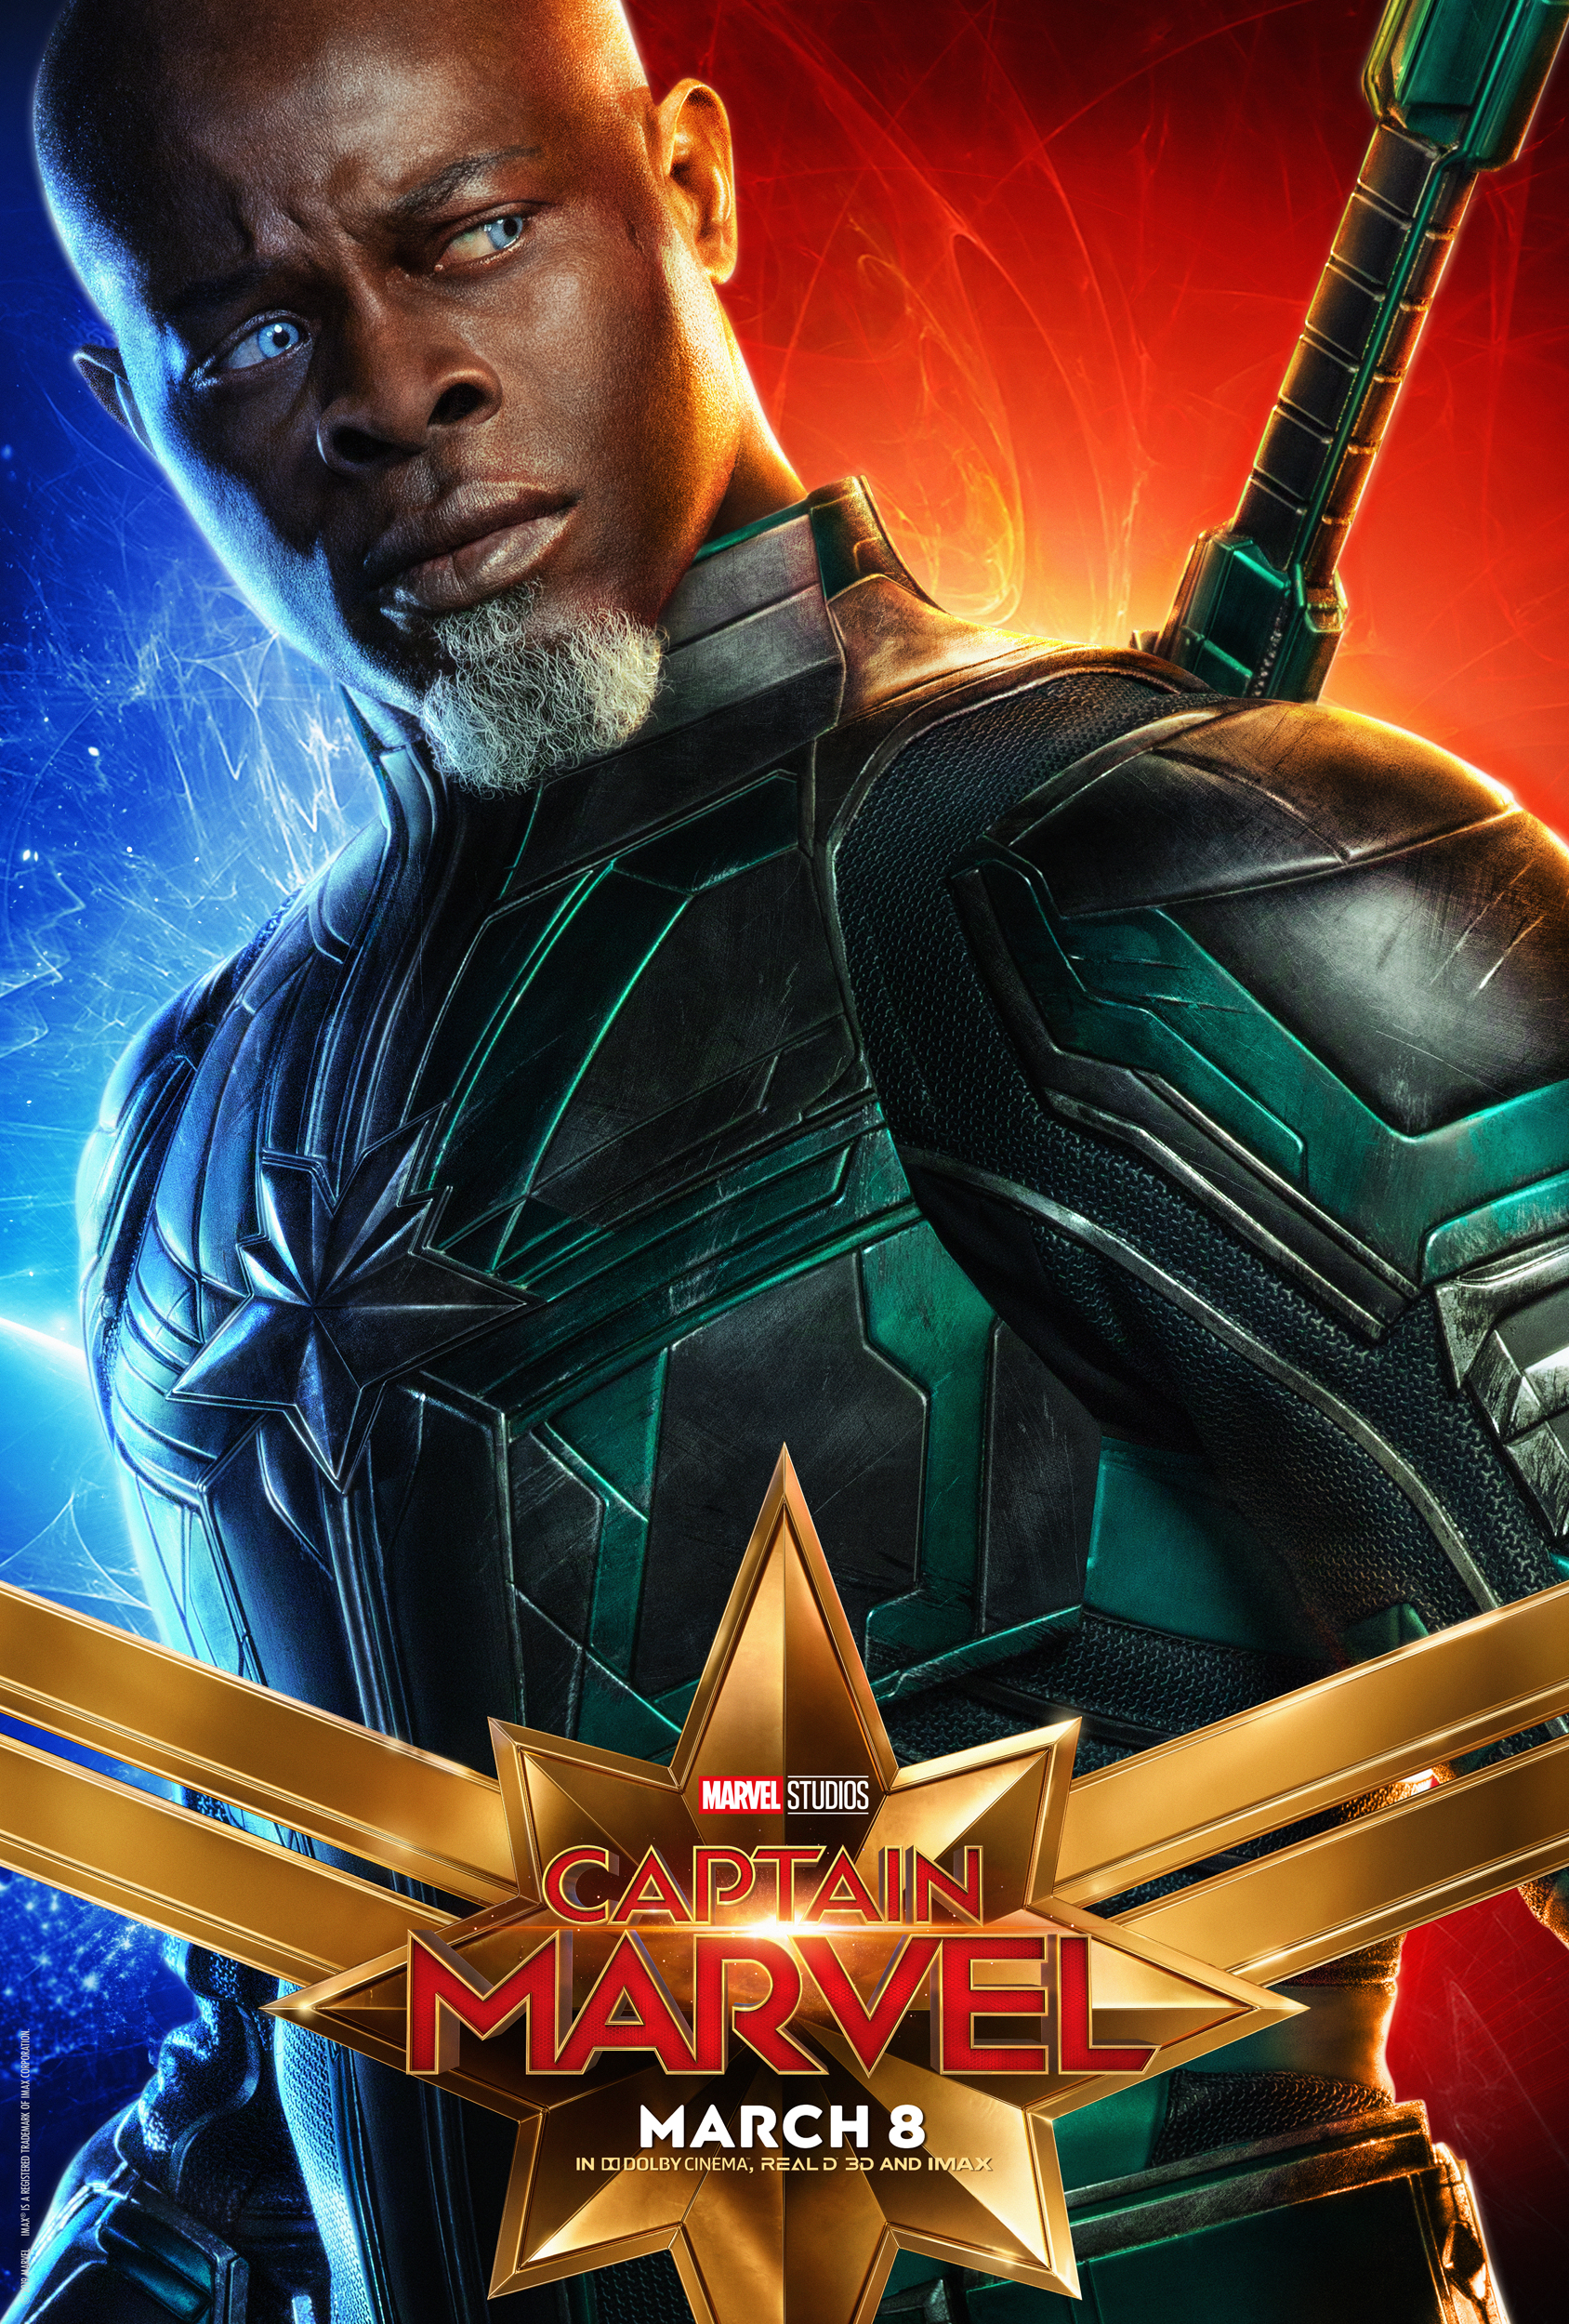 Collect Them All! New Captain Marvel Character Posters Are